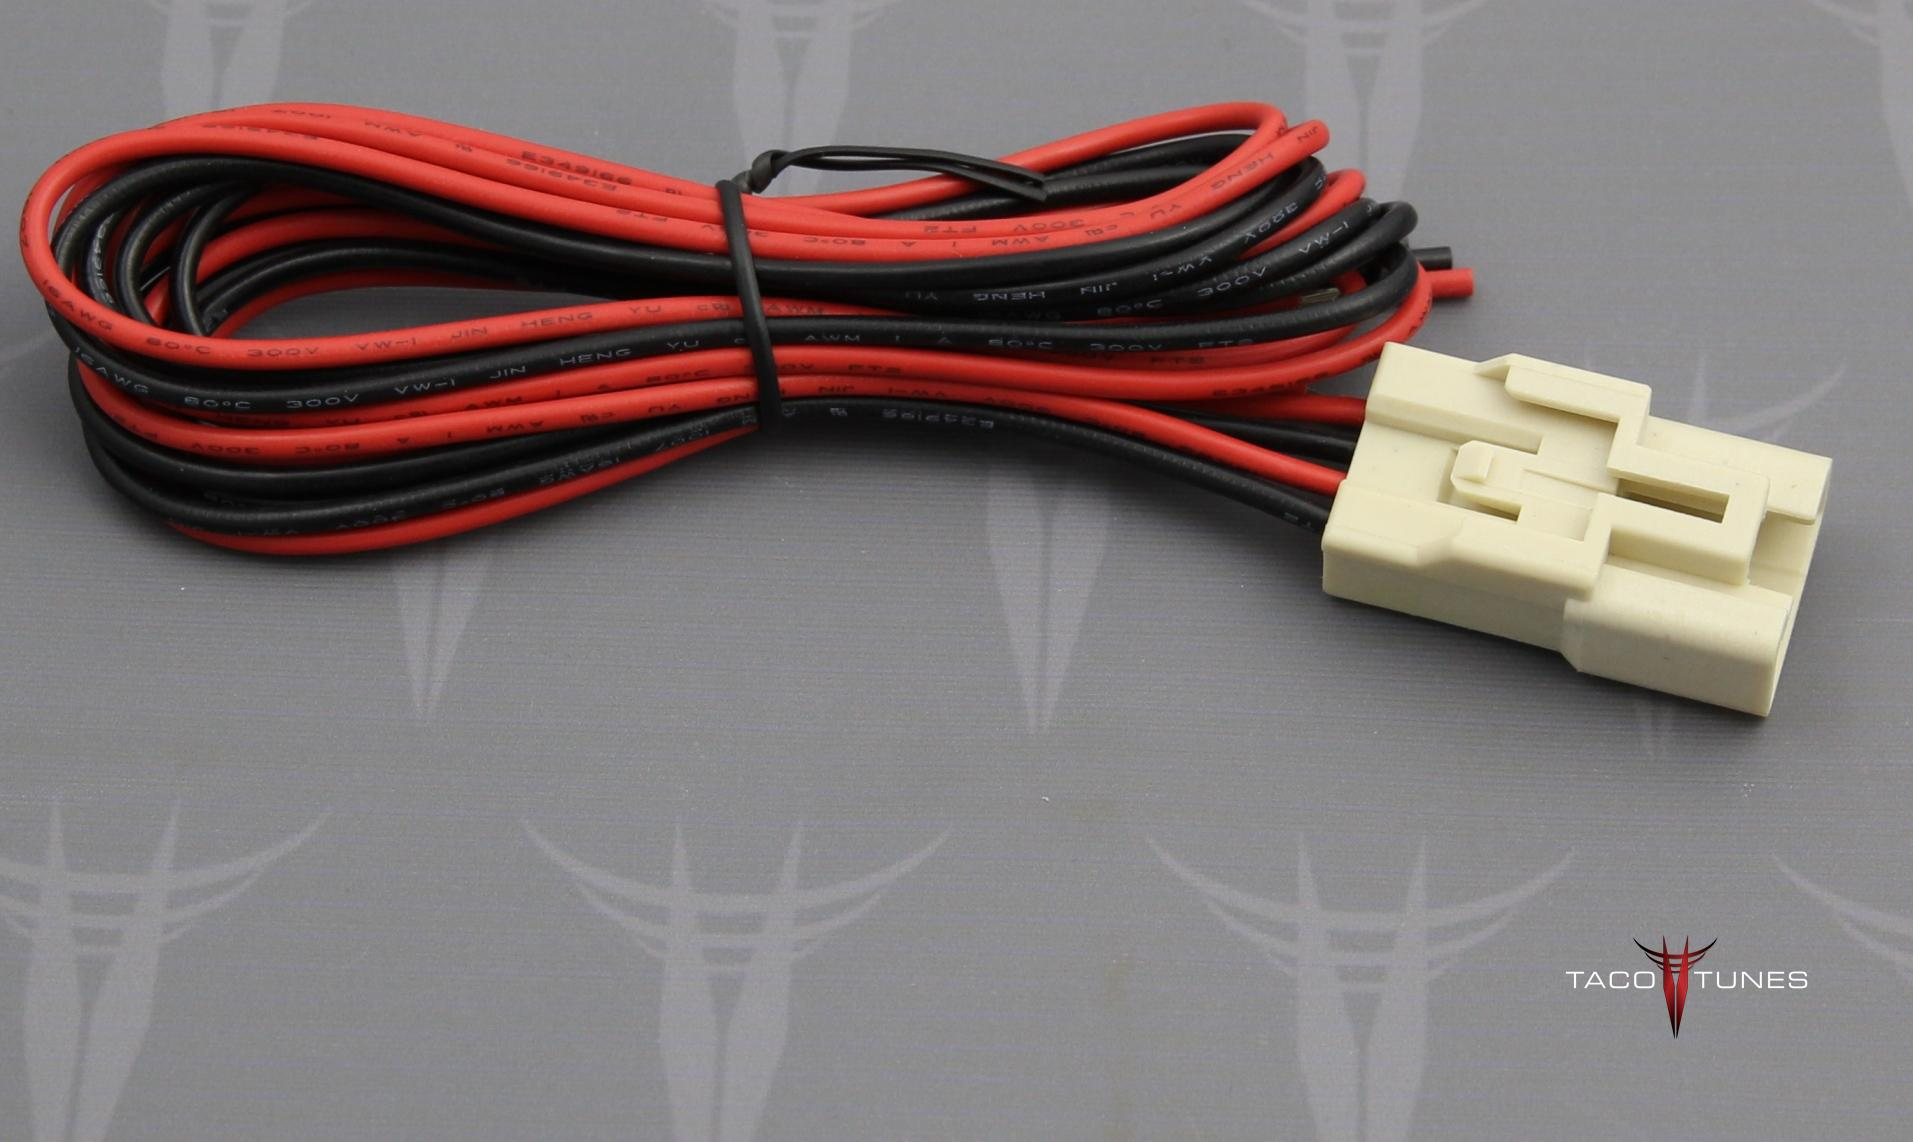 Toyota camry tweeter wire harness adapters